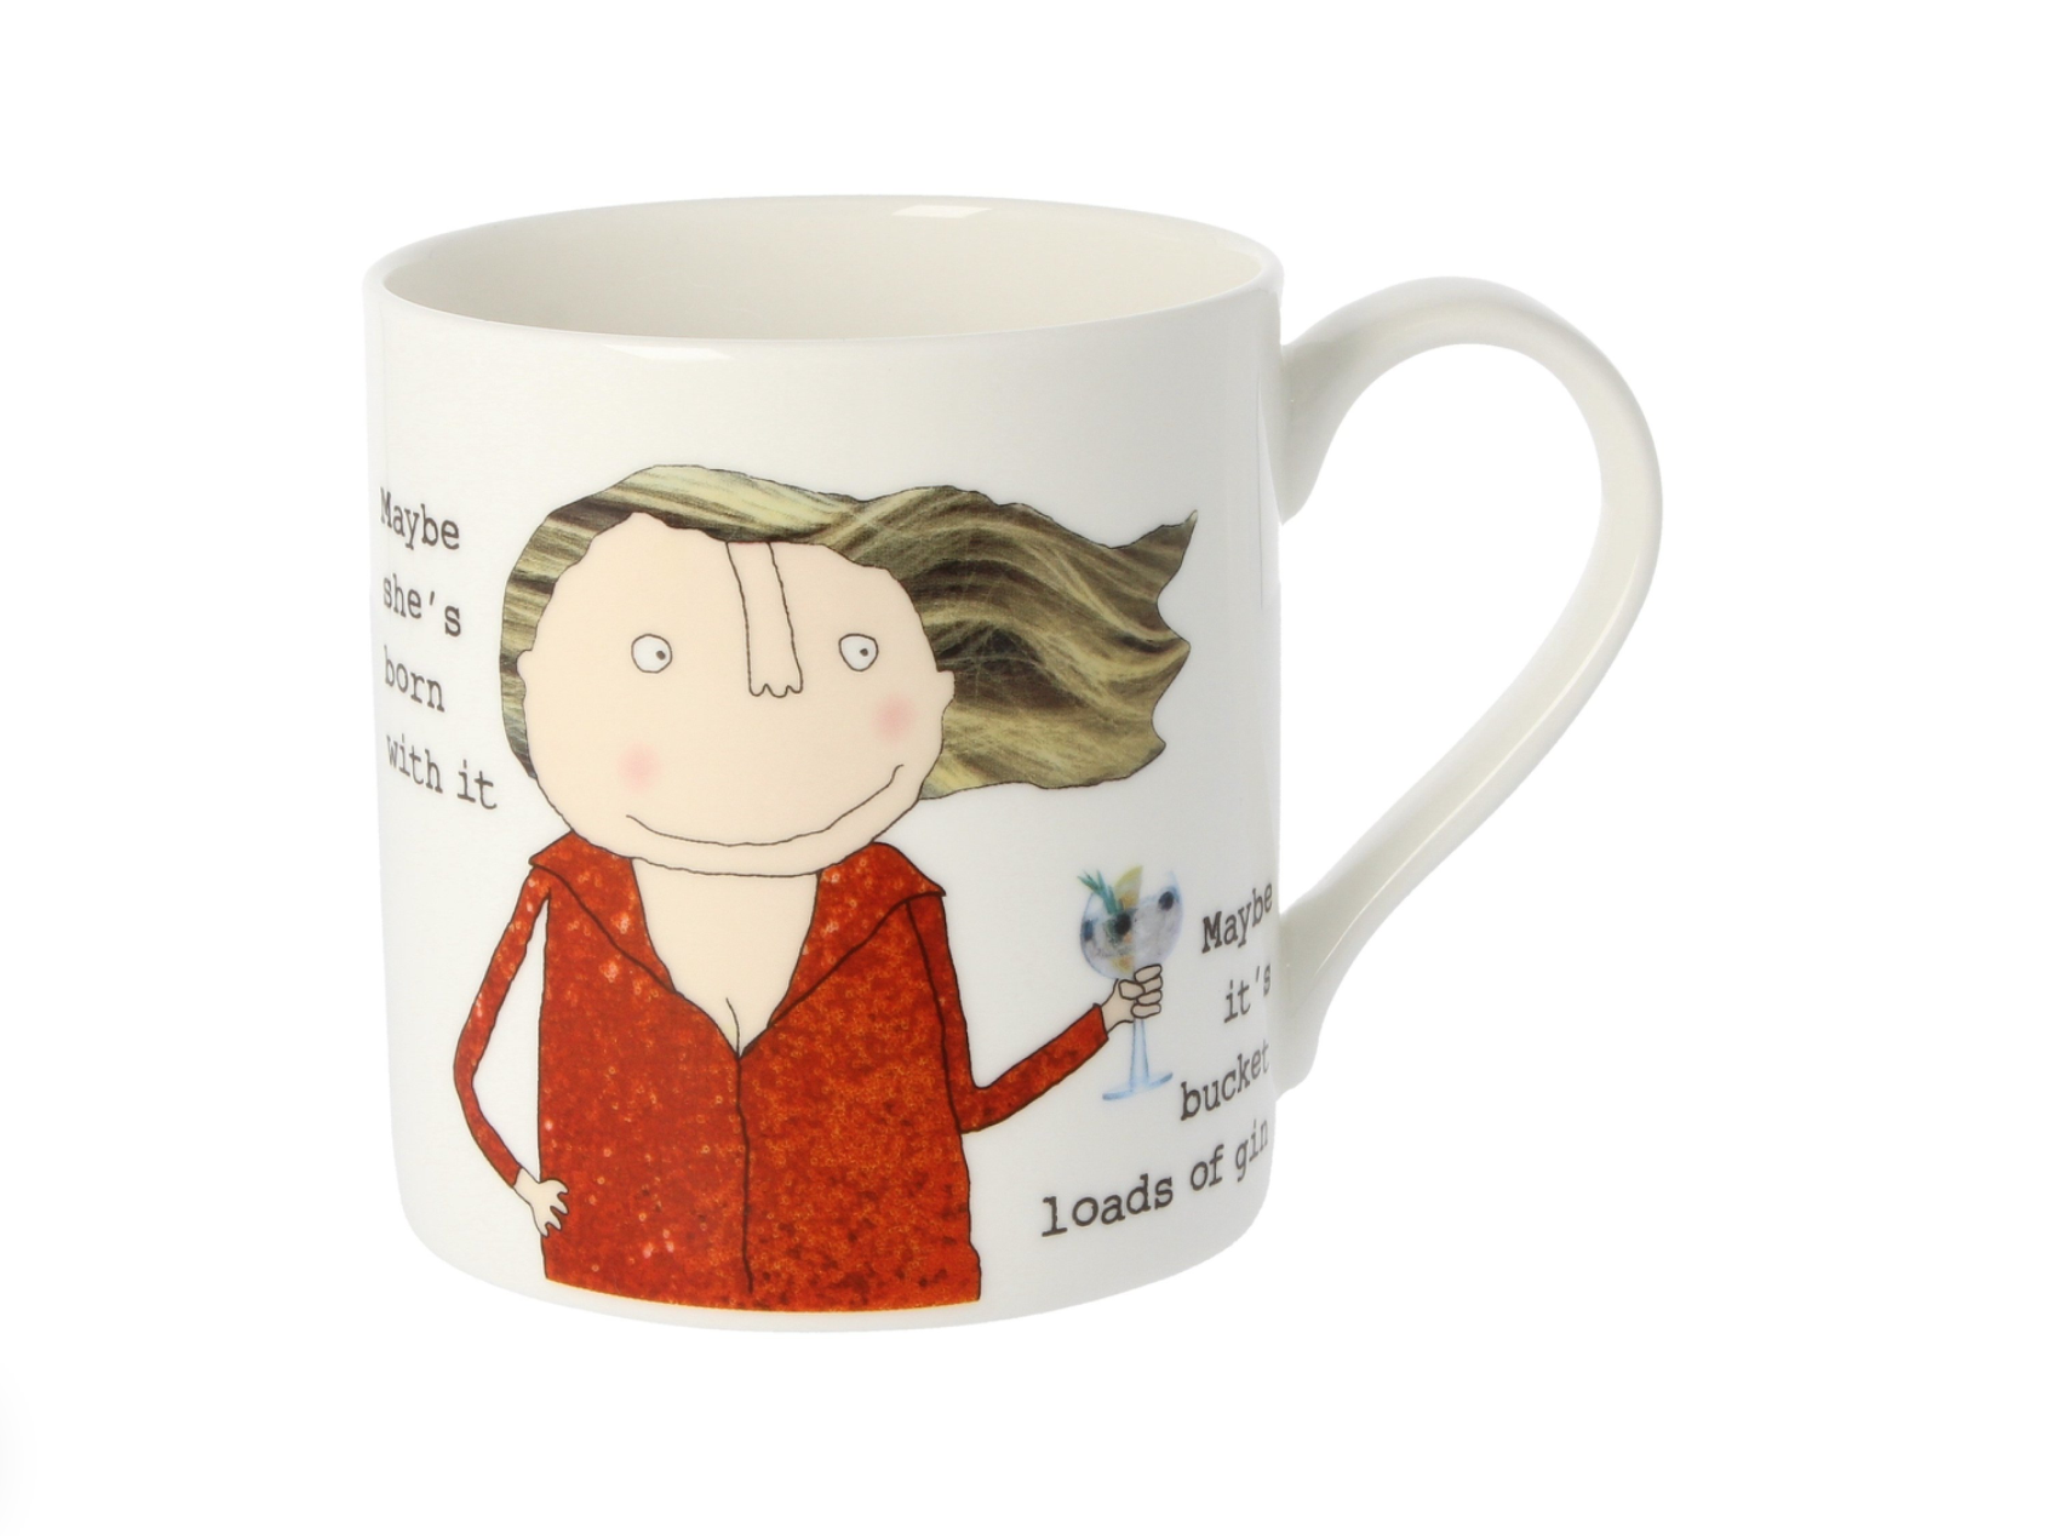 "Rosie Made A Thing ""Maybe she's born with it ..."" Mug"